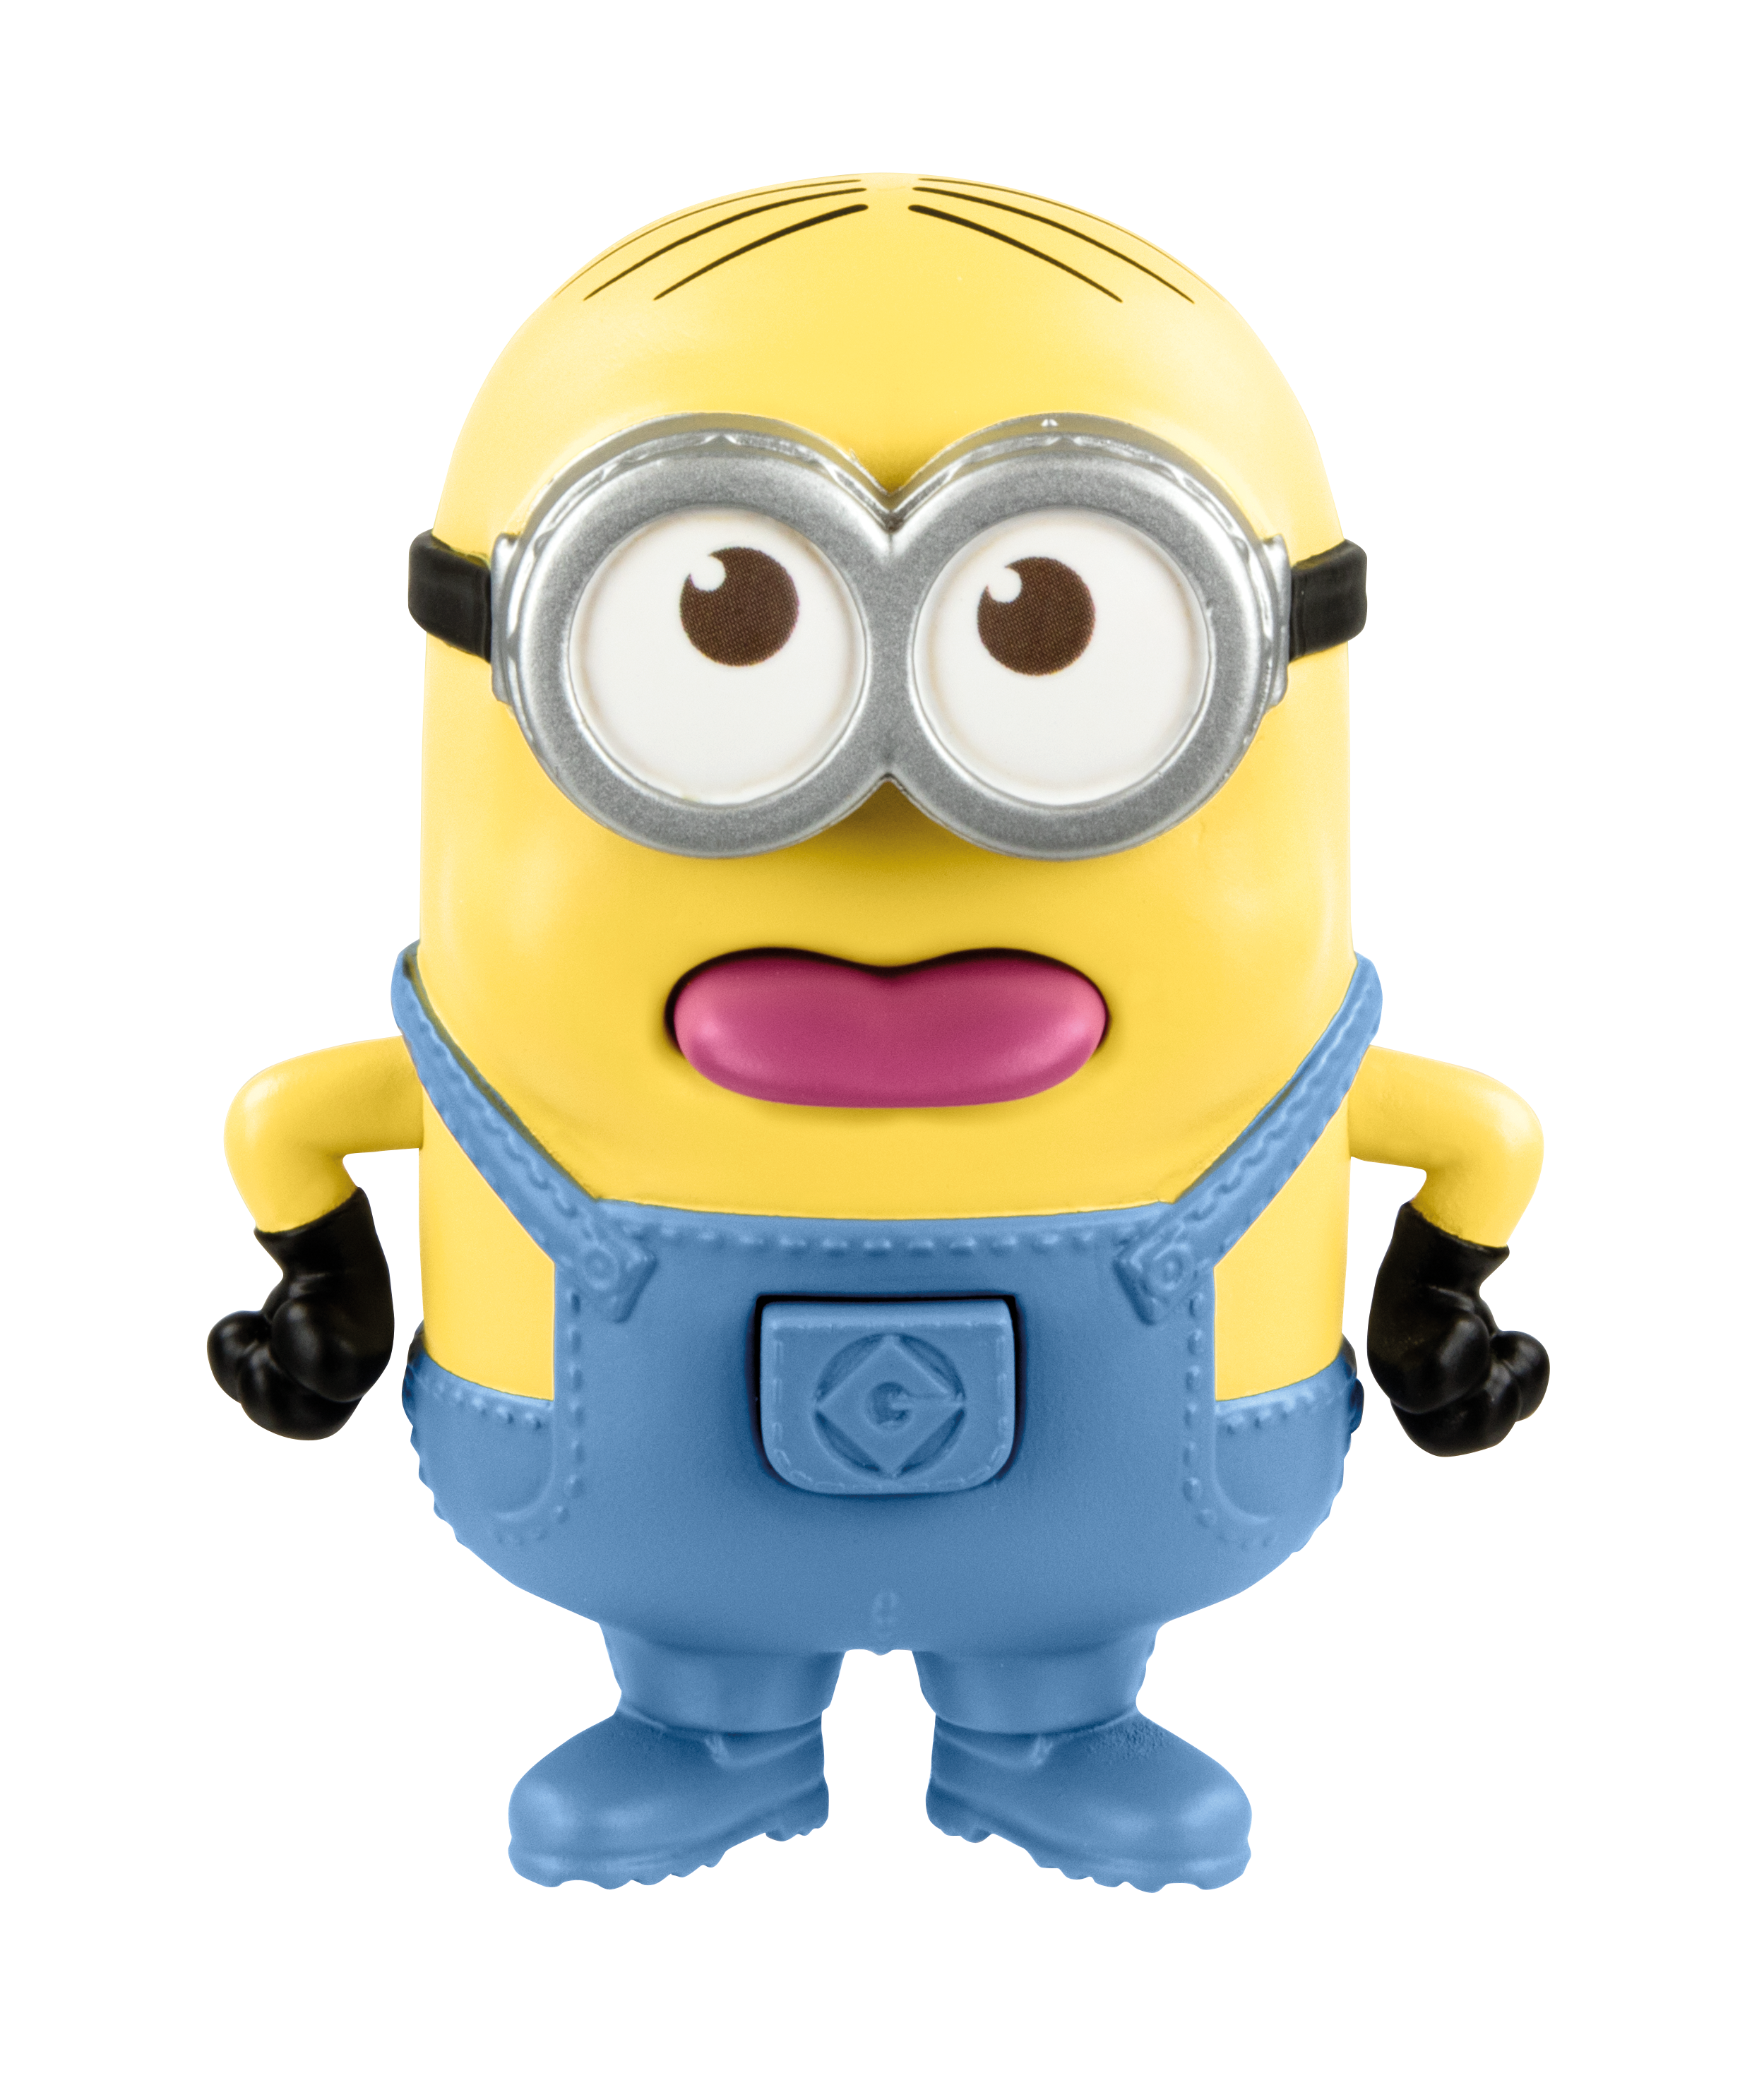 Minion png image. Minions images free download